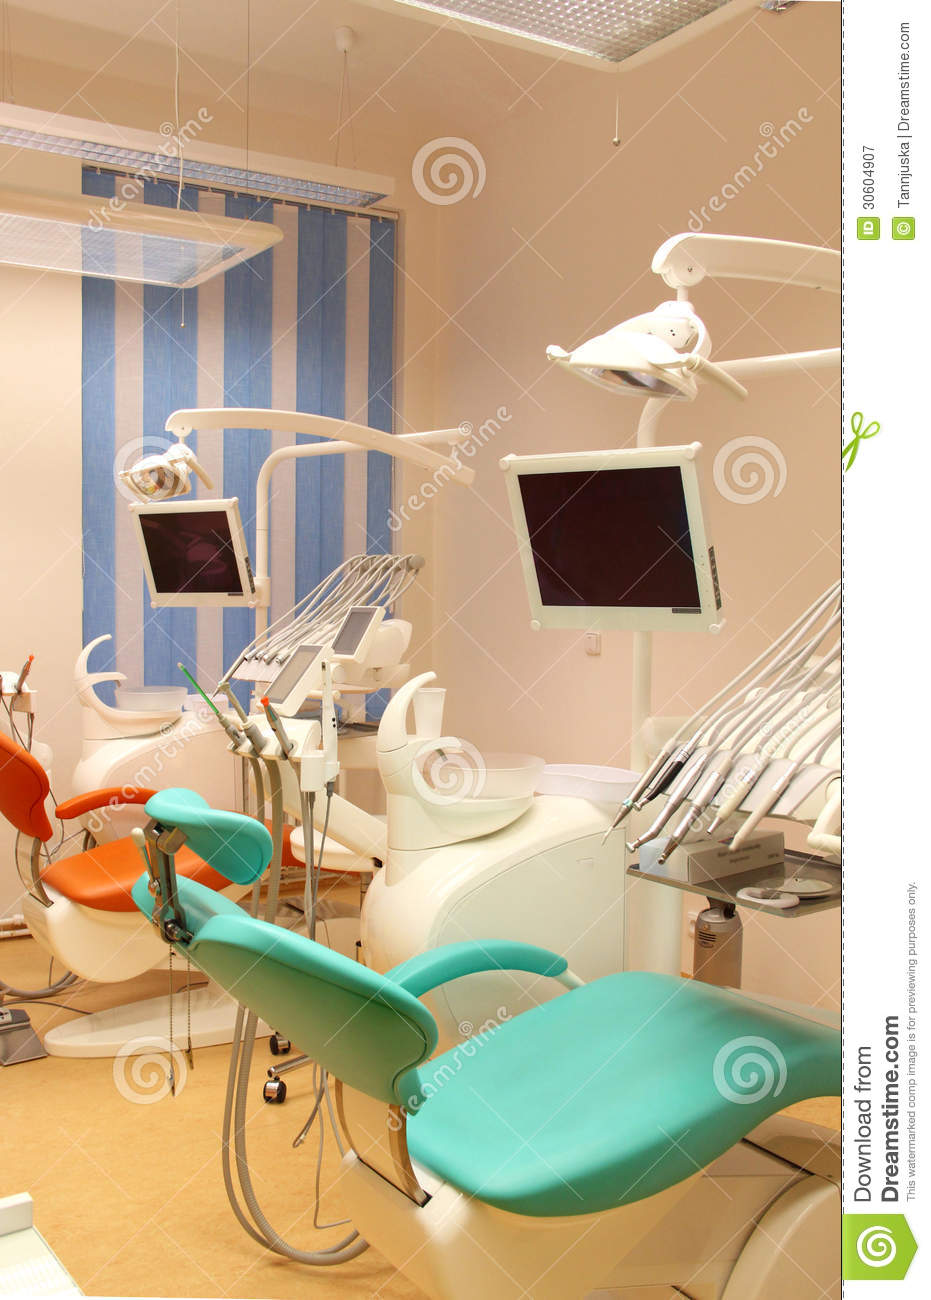 Hospital Procedure Room: Dental Clinic Office With Equipment Royalty Free Stock